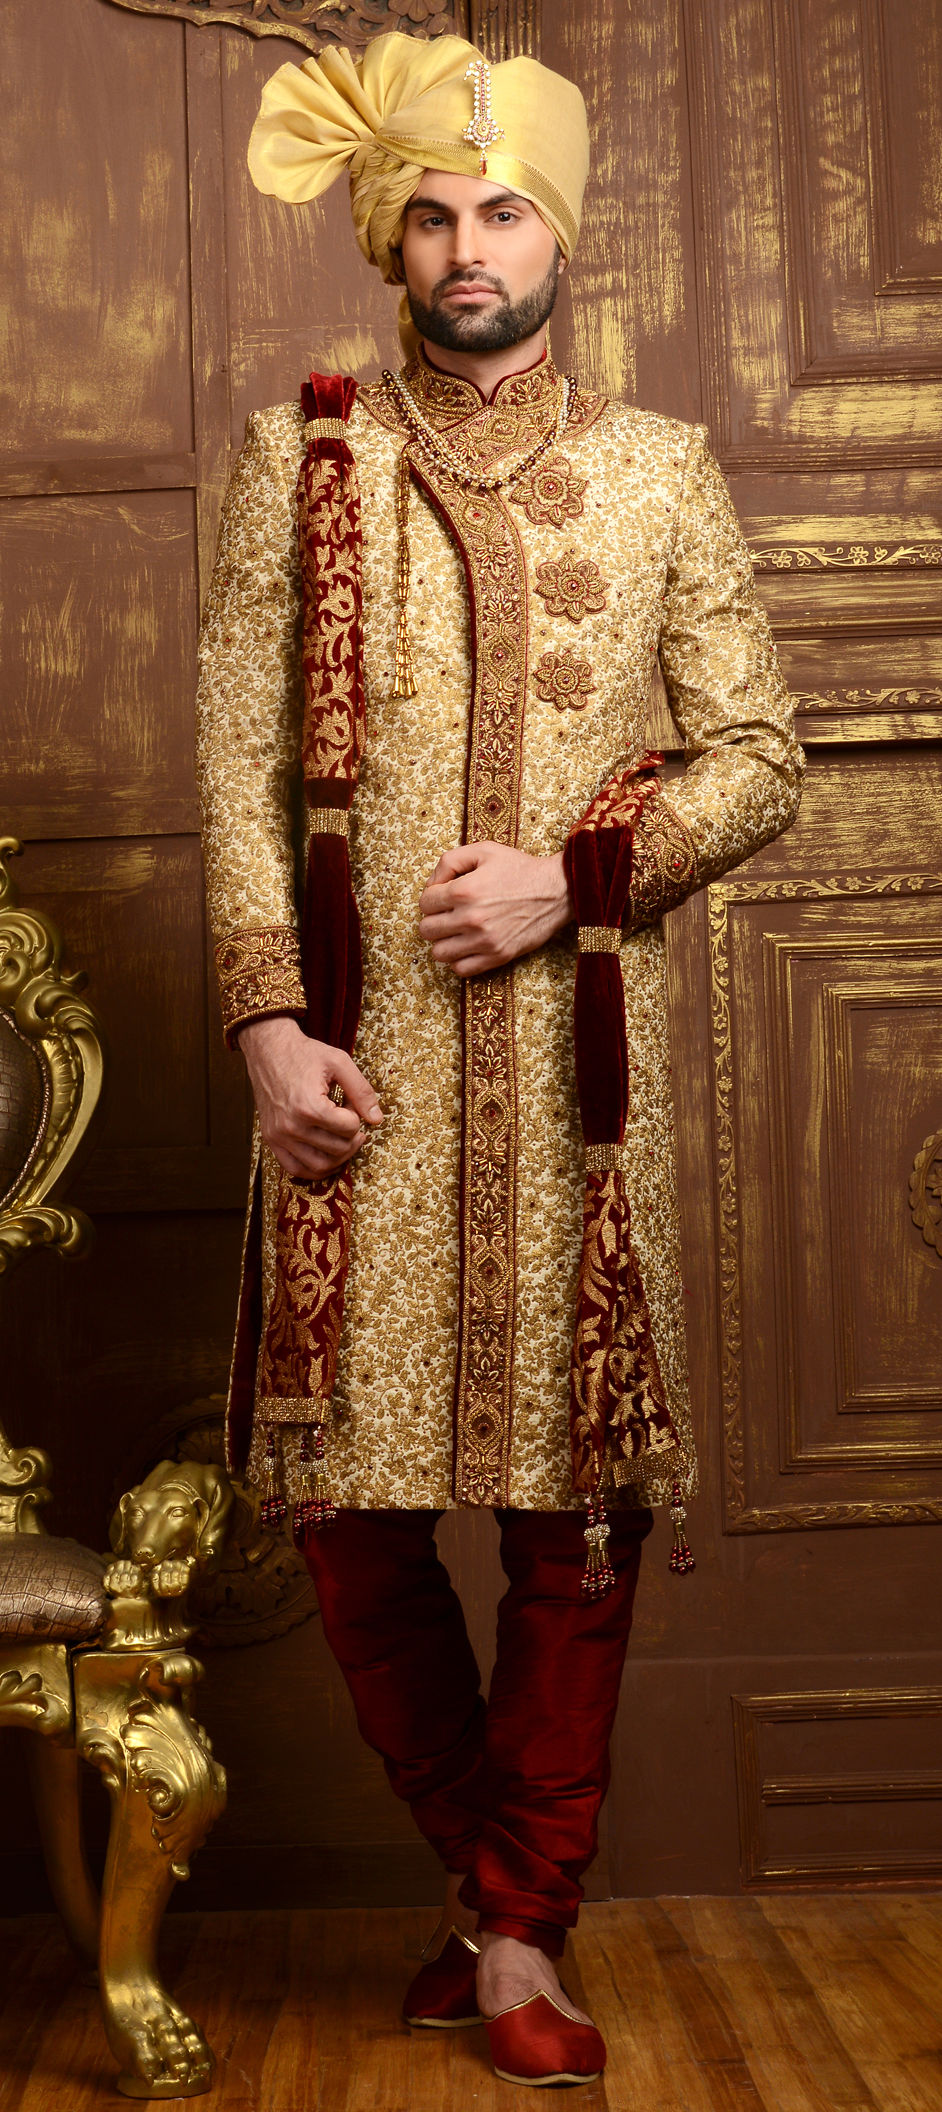 495c0a3b08 Beige and Brown color Brocade, Jacquard, Silk fabric Sherwani : 505833